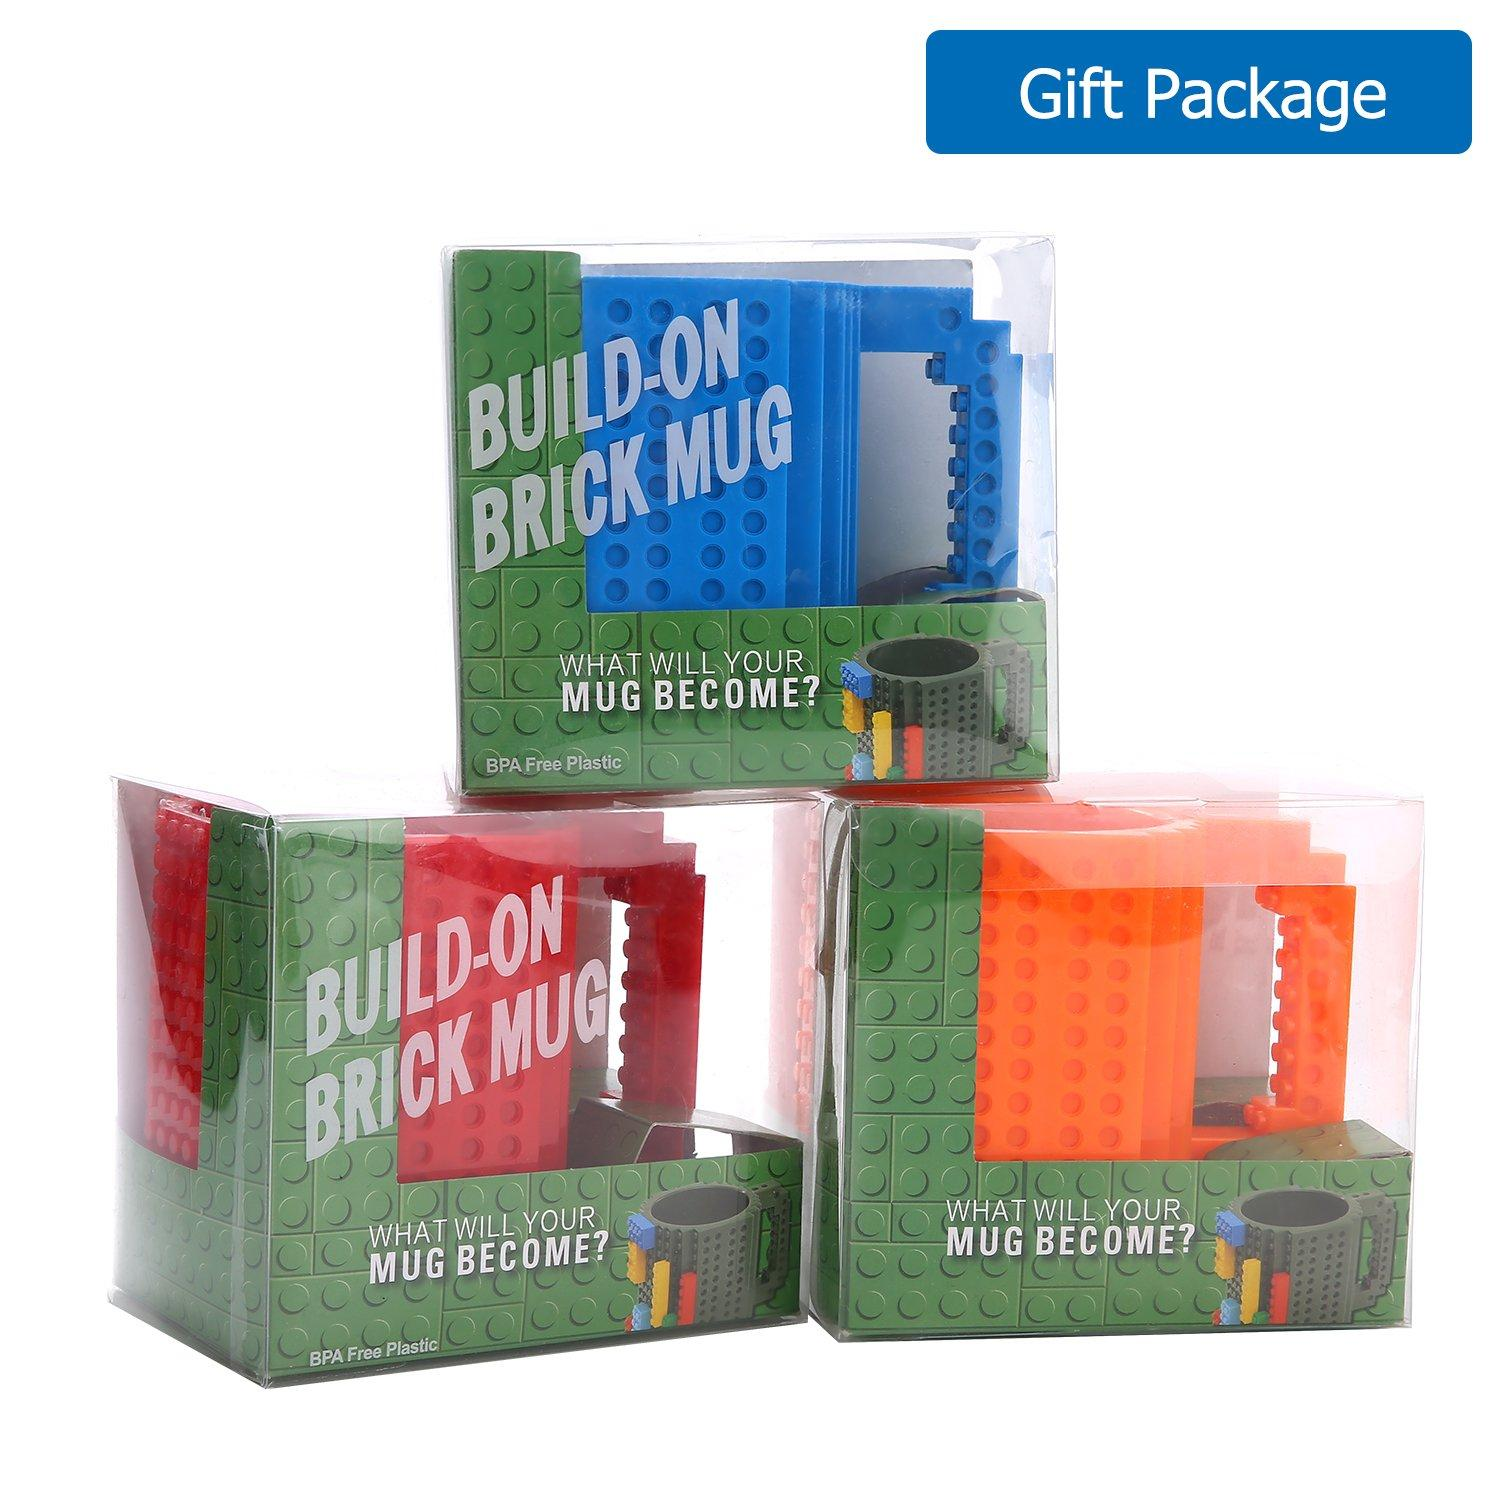 Build-On Brick Mug Cup $4.94